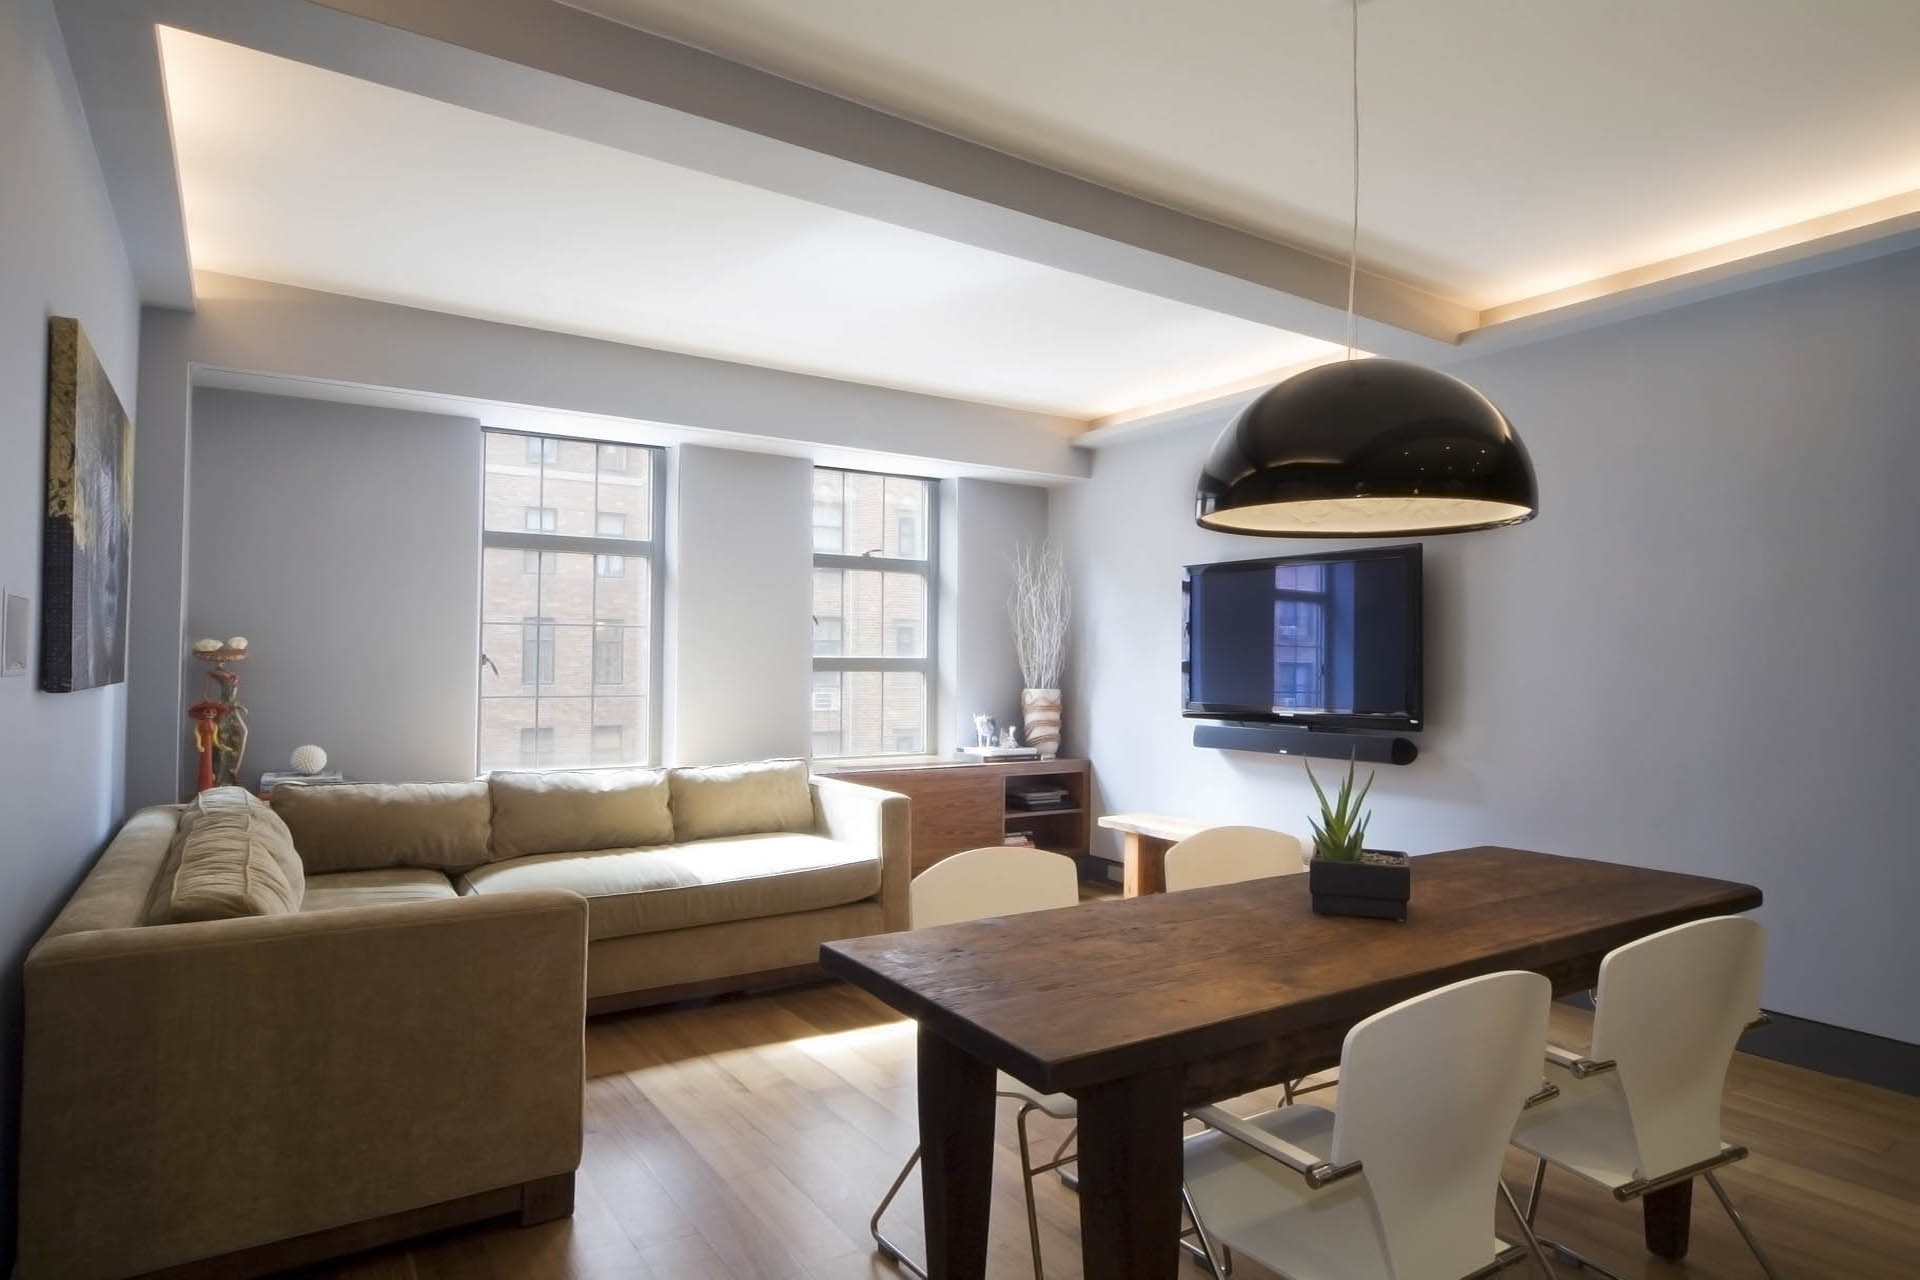 Living Area at West 24th Street - Element Design Group NYC